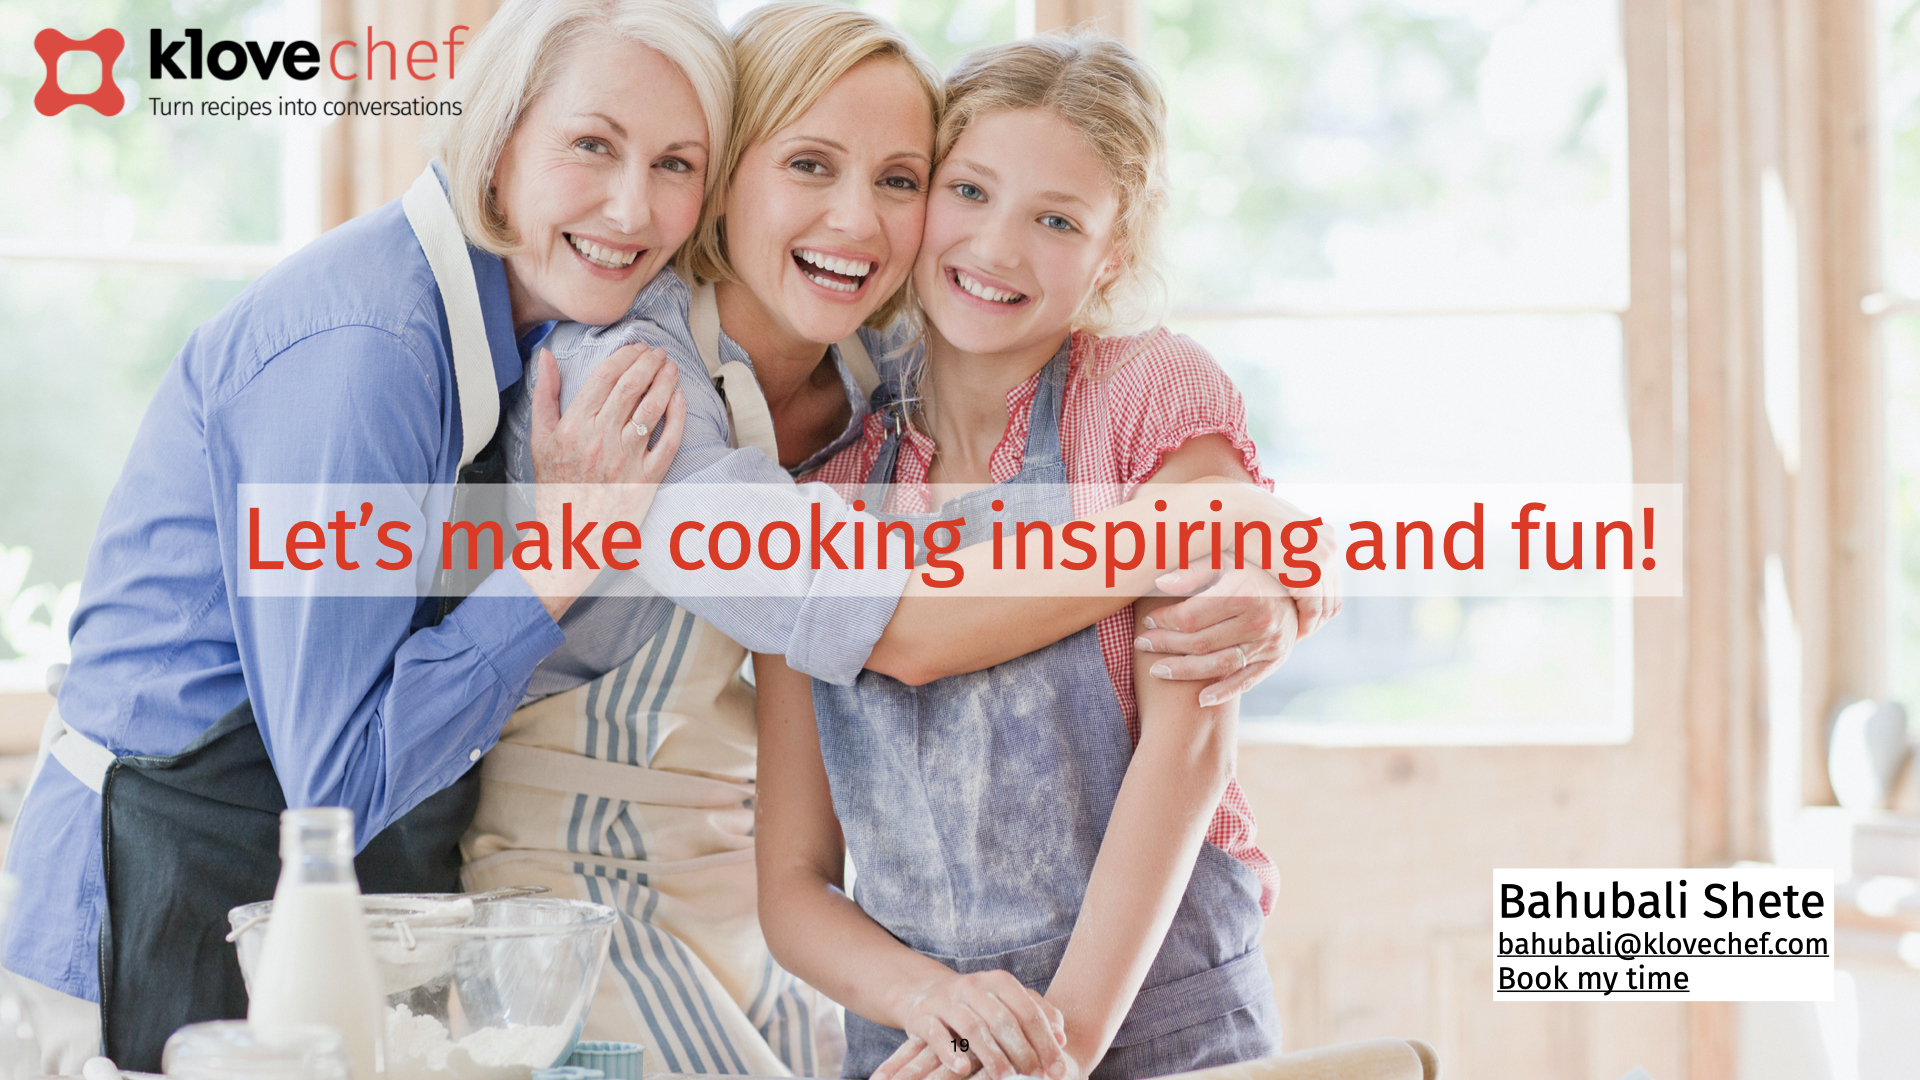 Let's make cooking inspiring and fun again